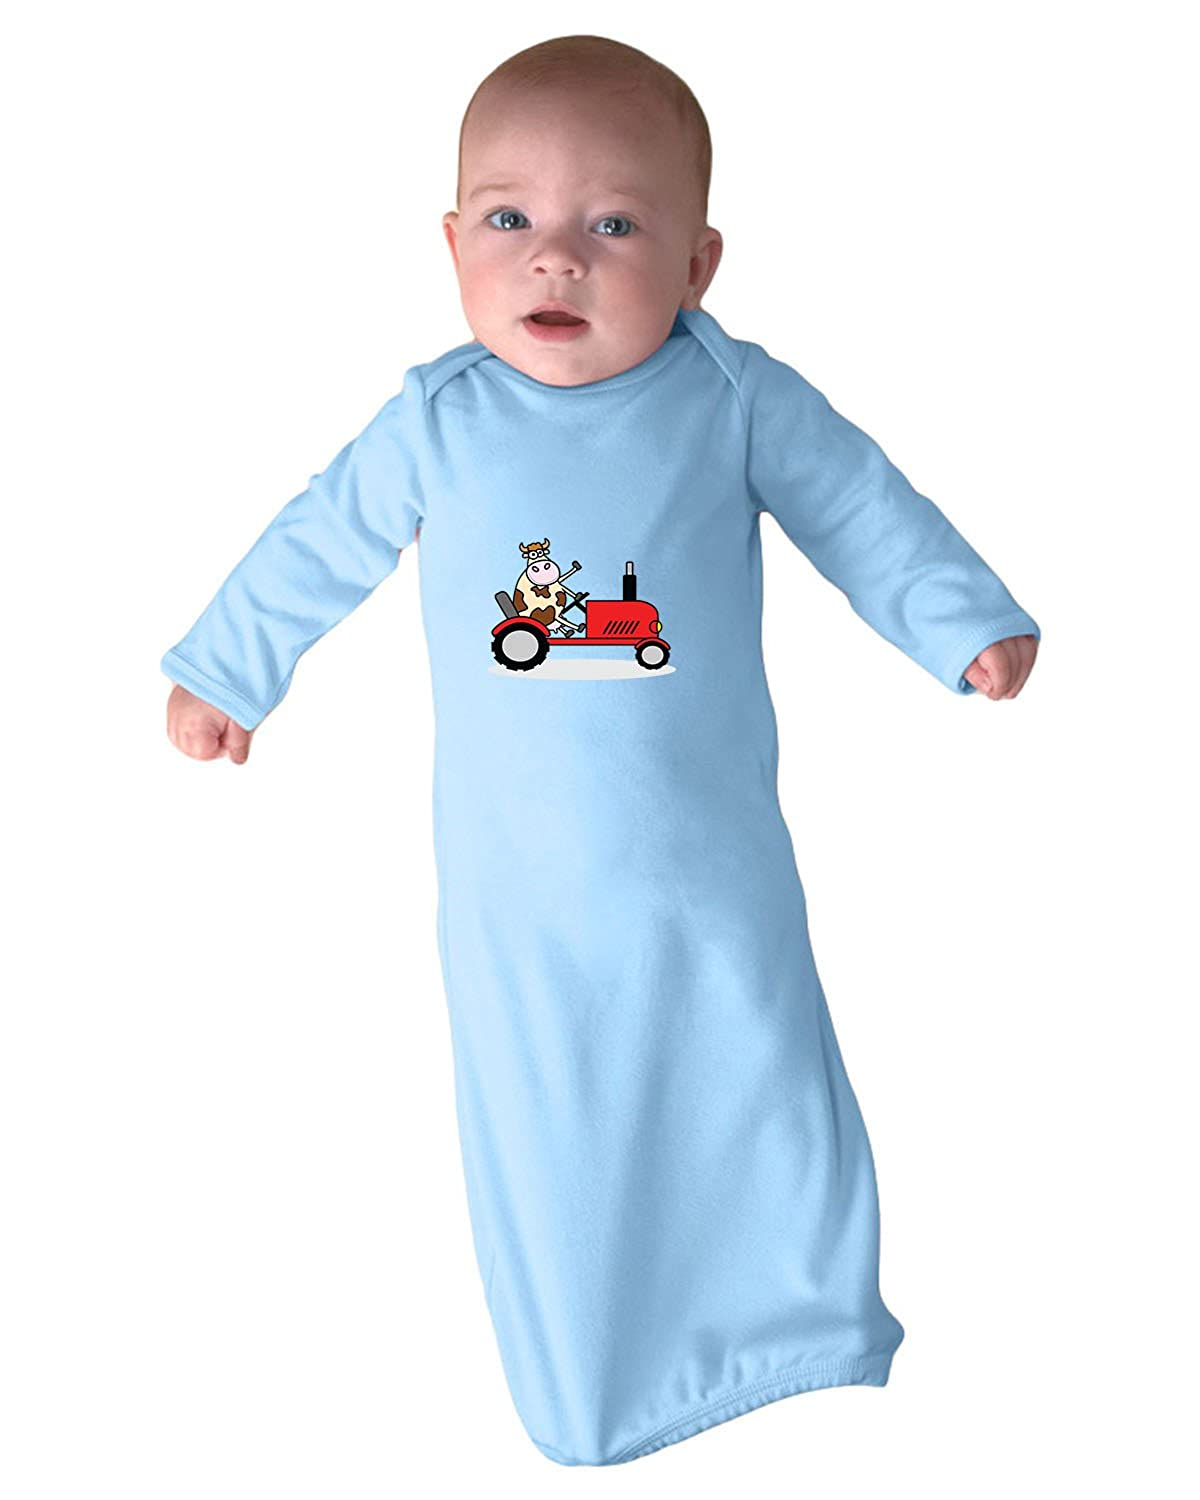 Cow in Tractor Infant Baby Rib Layette Sleeping Gown BGANM0423_LB